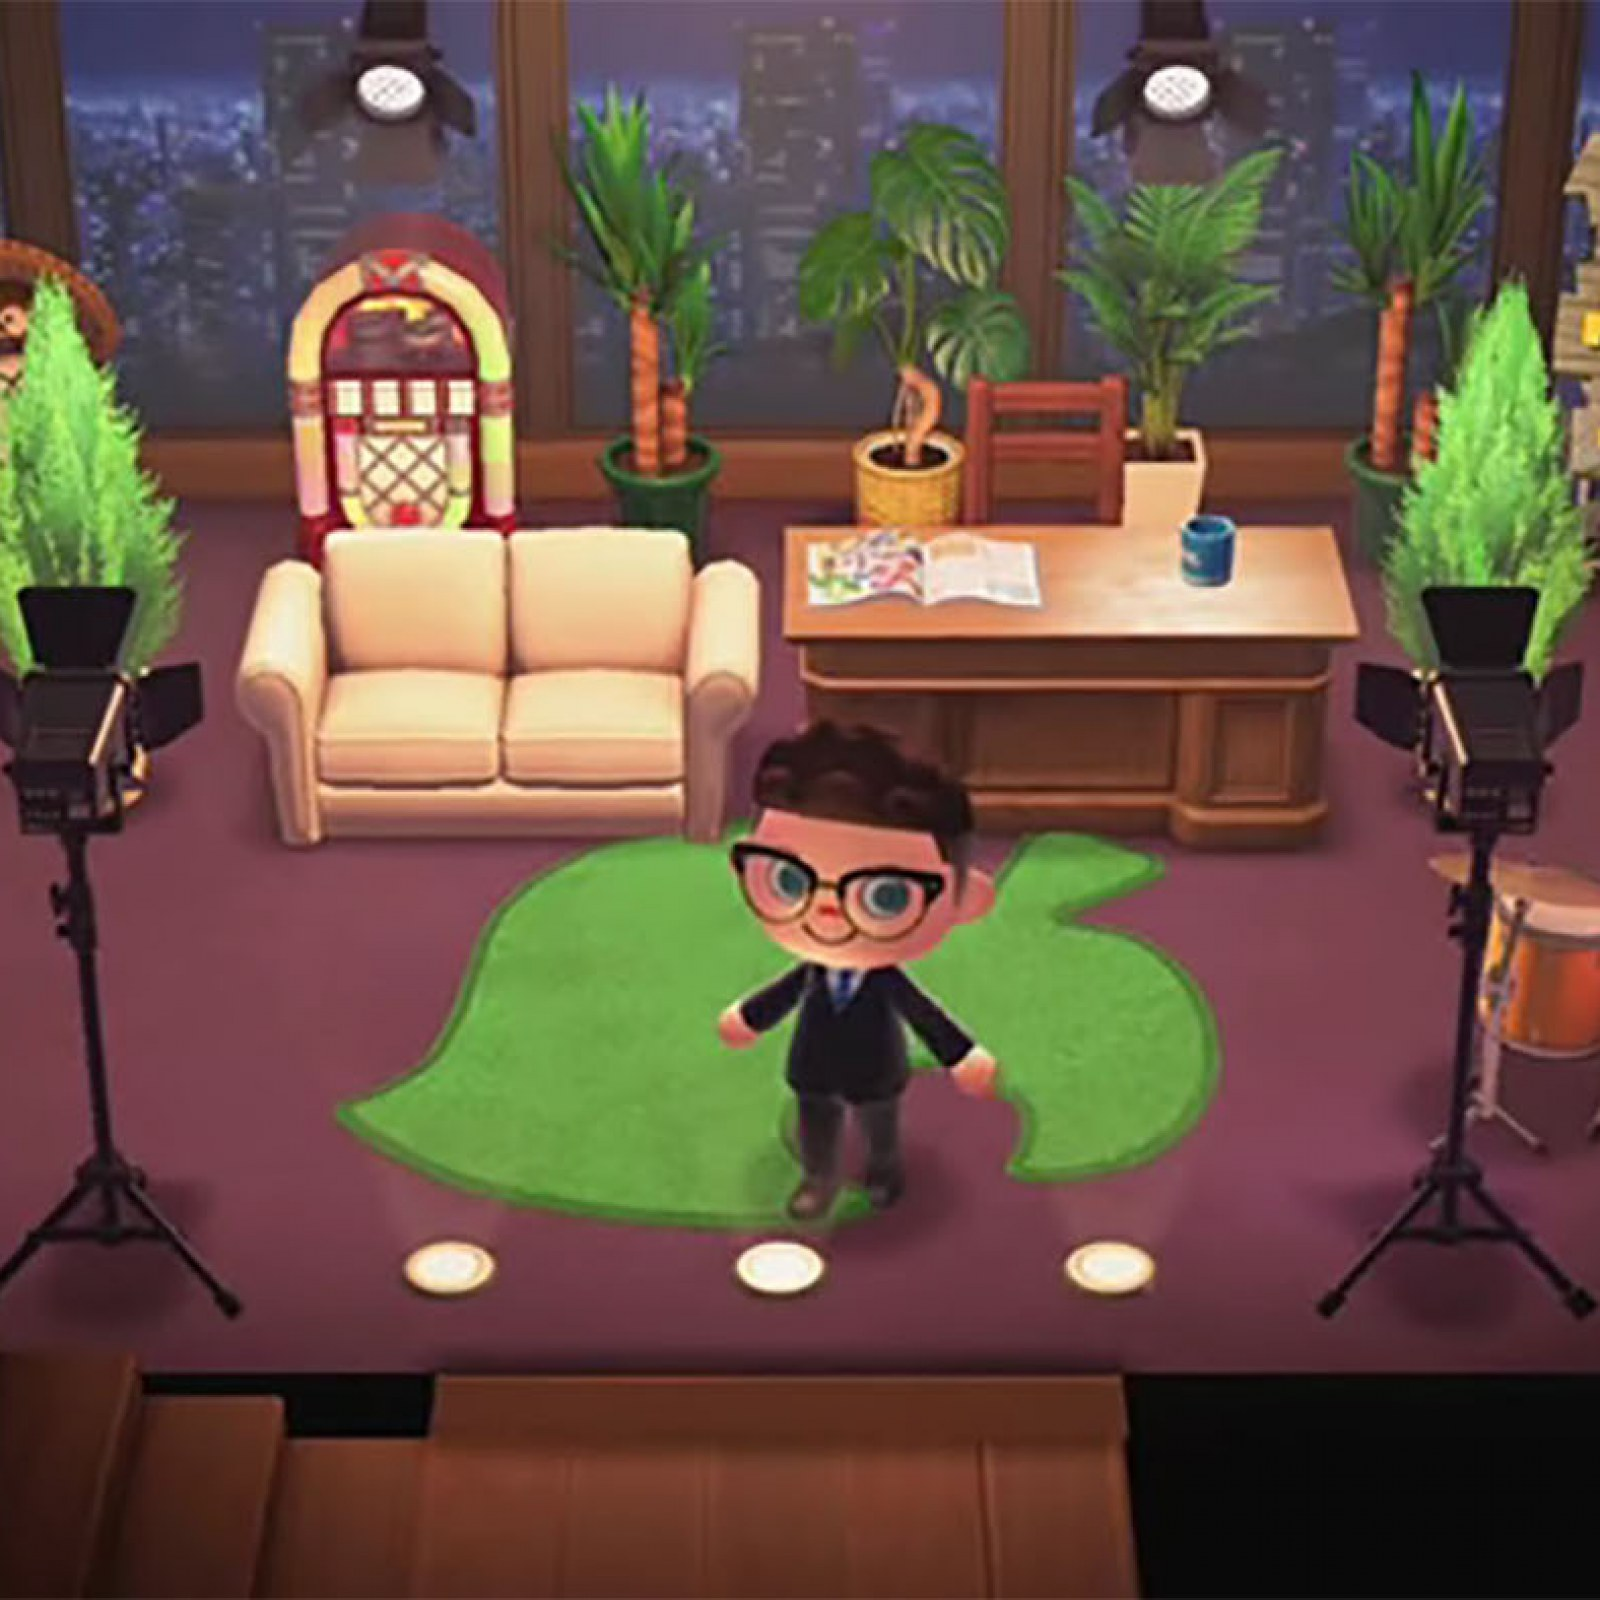 Living Room Animal Crossing New Horizons - RUNYAM on Living Room Animal Crossing New Horizons  id=46244